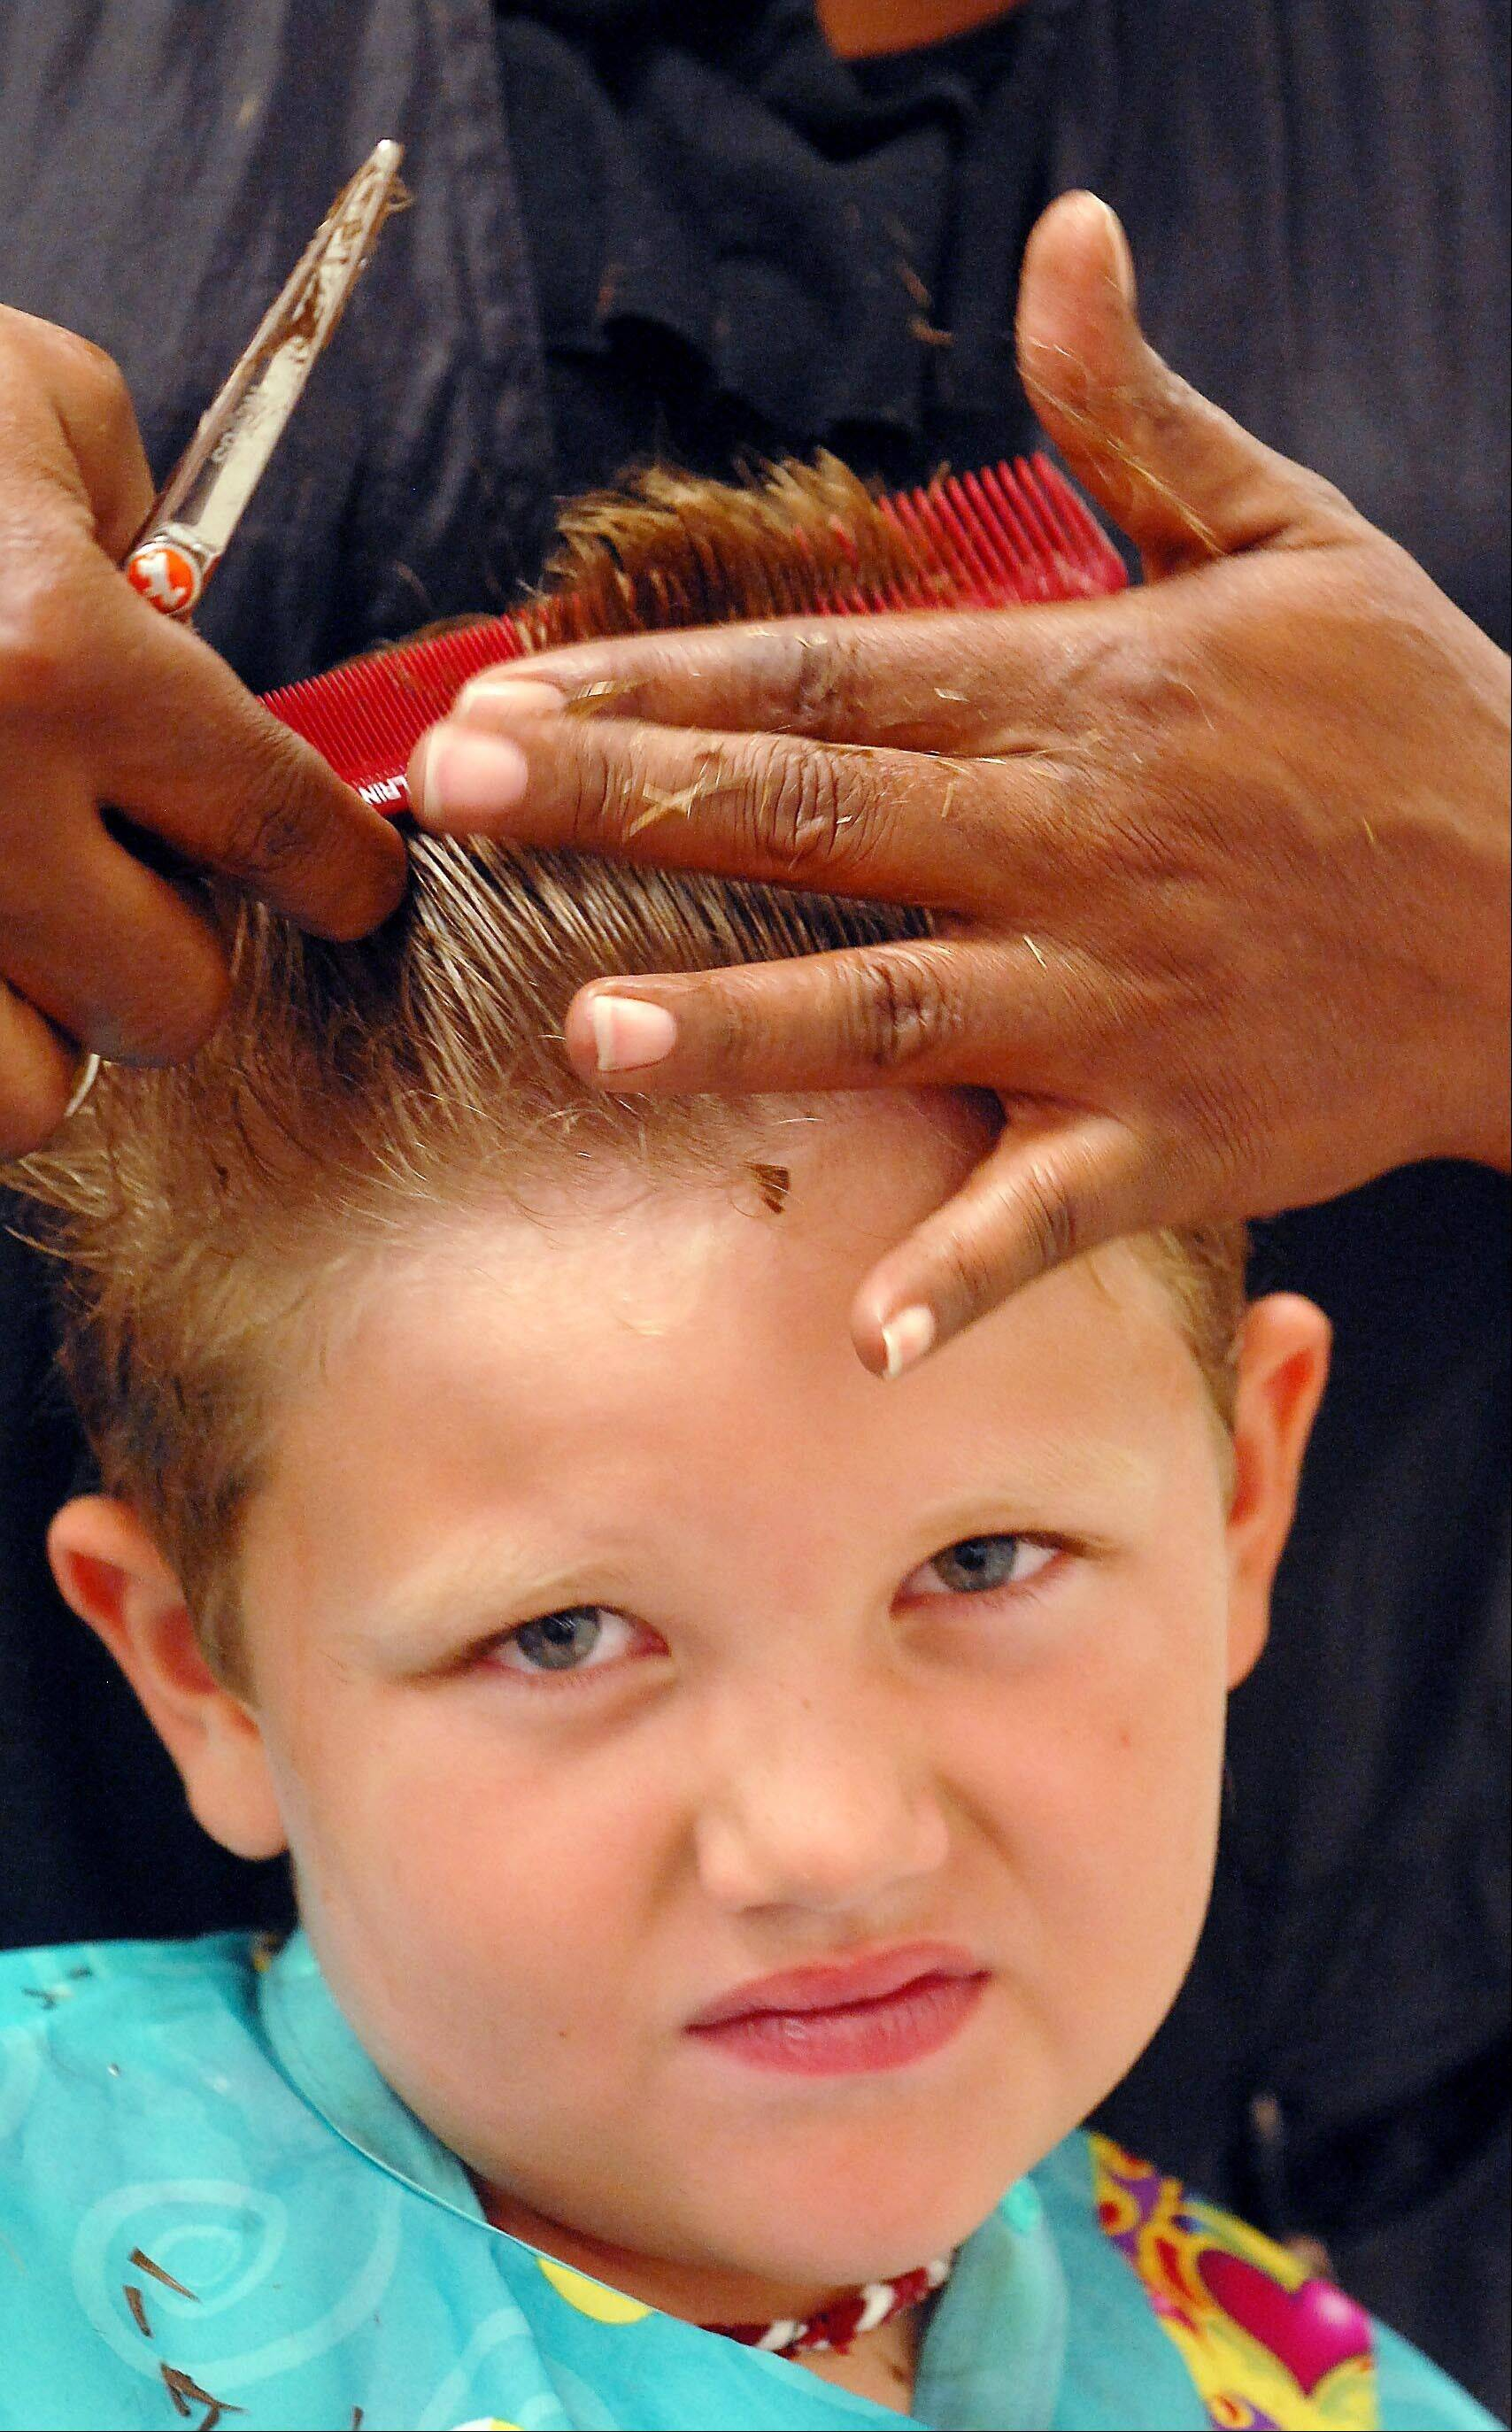 Wesley Brooks, 7, of Huntsville, Ala., has his hair cut by Melinda Gilbert at the J.C. Penney styling salon in Huntsville, Ala. J.C. Penney is running a nationwide program giving kids ages 5-12 free back-to-school haircuts during the month of August.